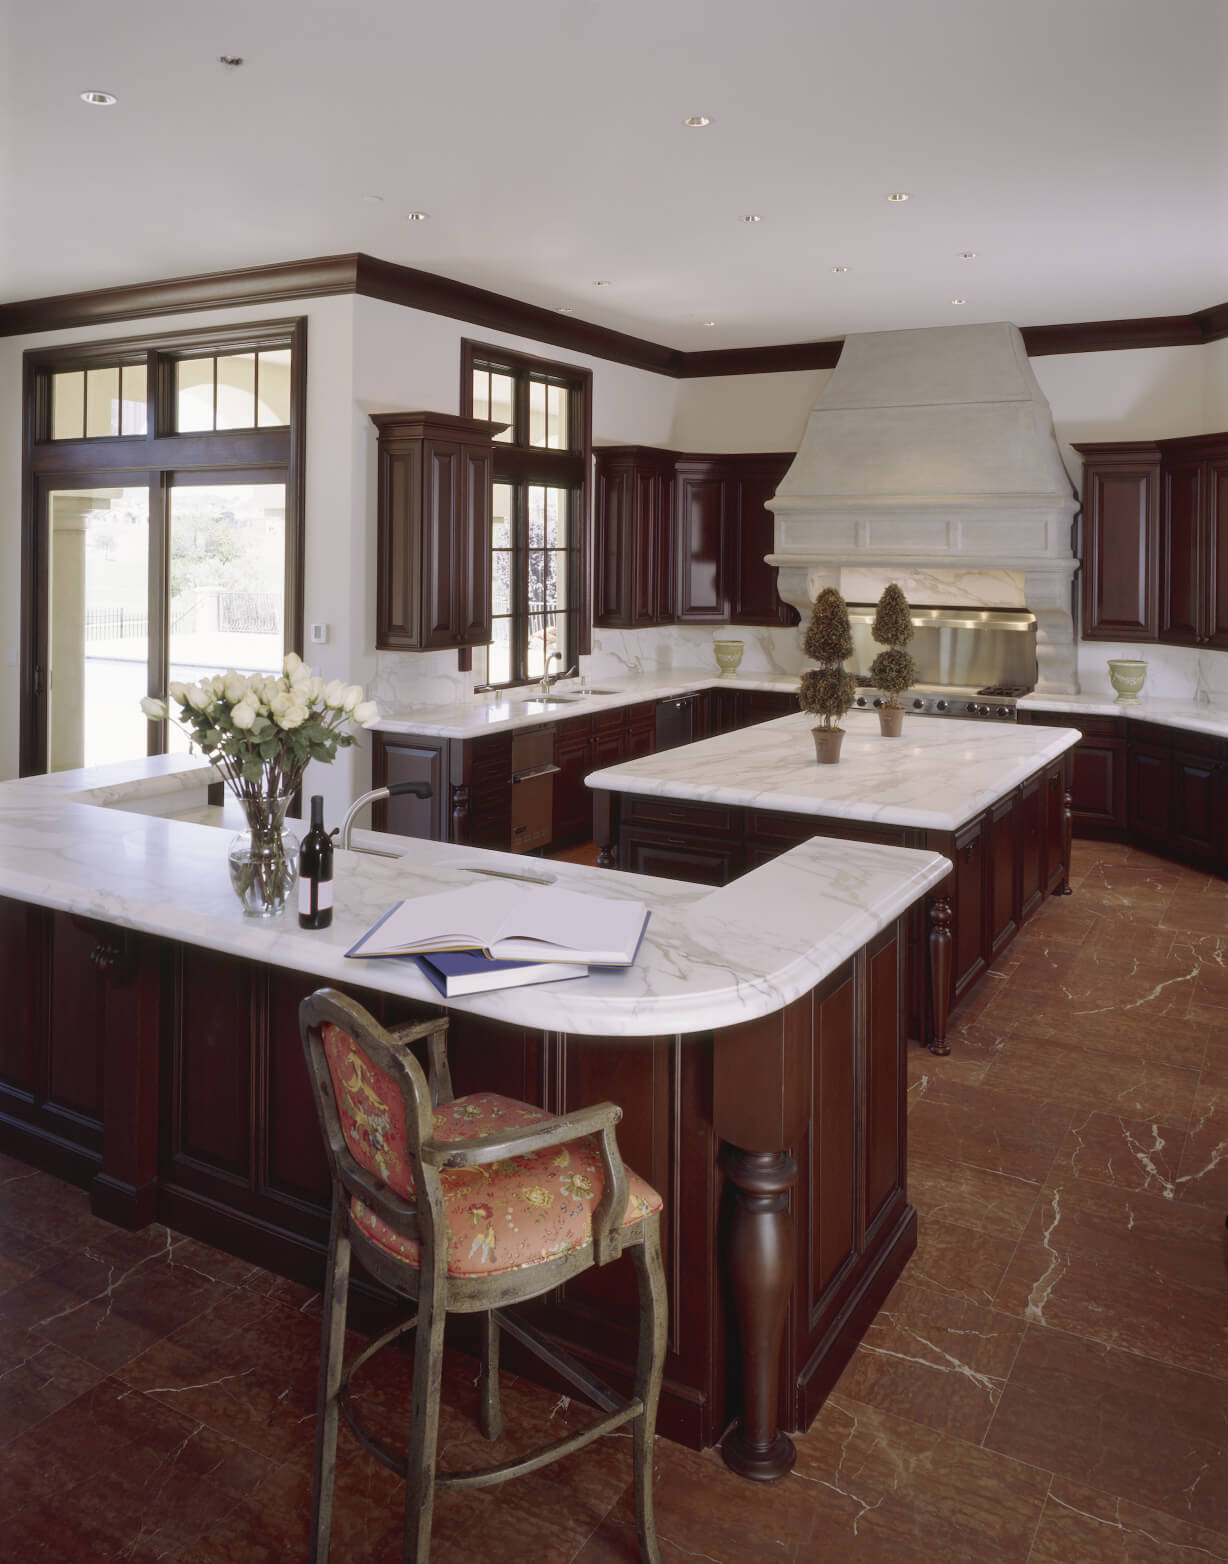 White kitchen cabinets with black marble countertops - Deep Reddish Brown Marble Flooring Is Paired With Darker Wood Cabinetry Under White Marble Countertops And